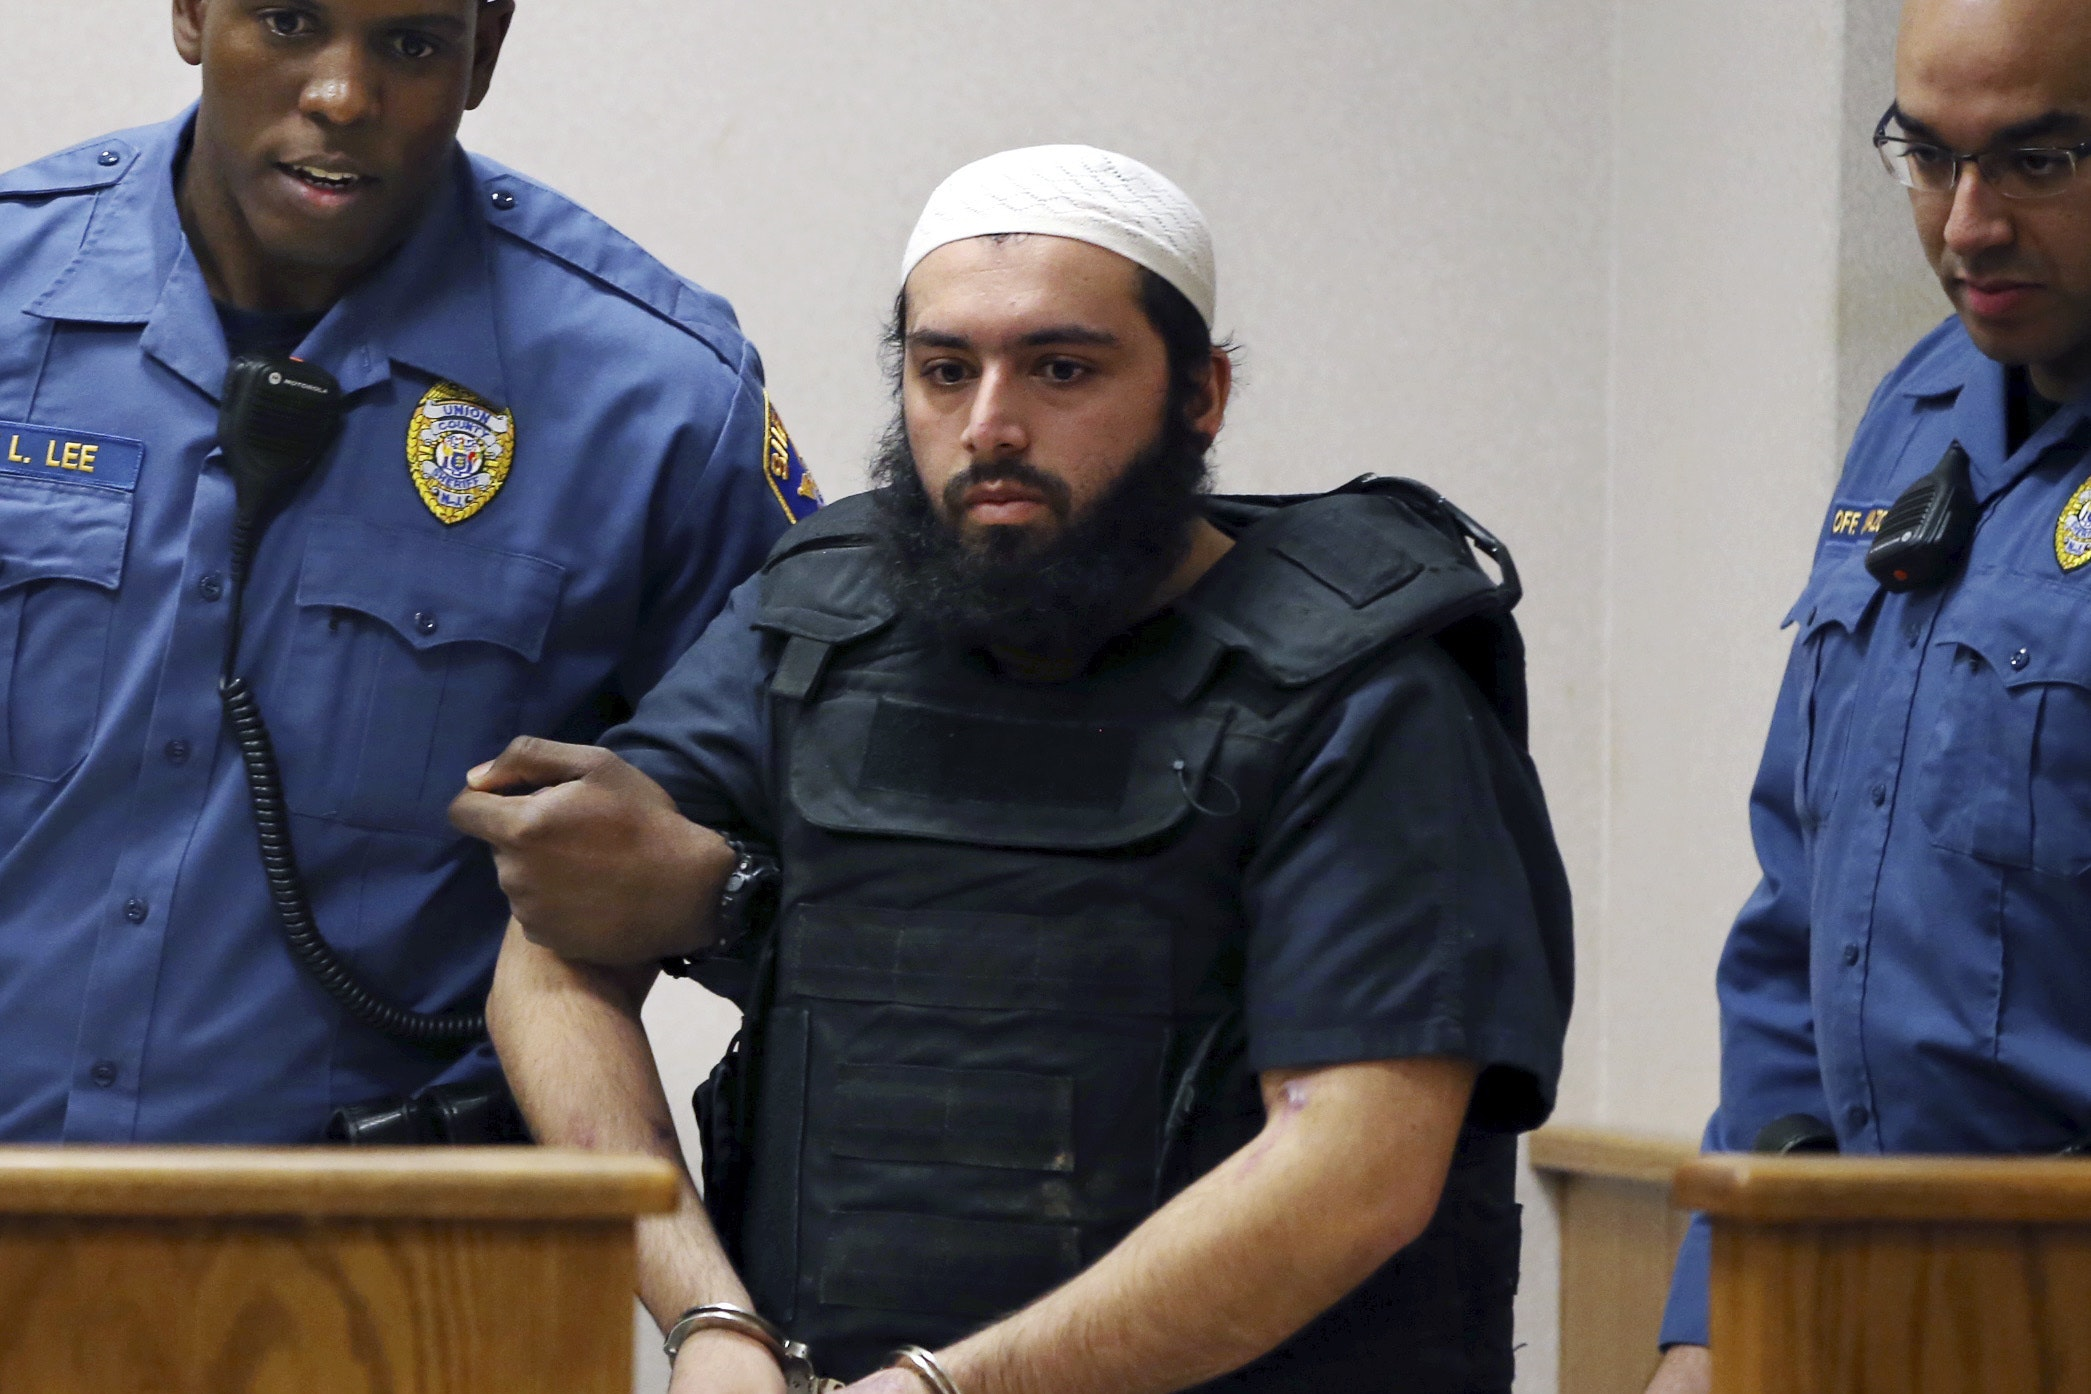 Ahmad Rahimi in court in Elizabeth, New Jersey (AP Photo/Mel Evans)